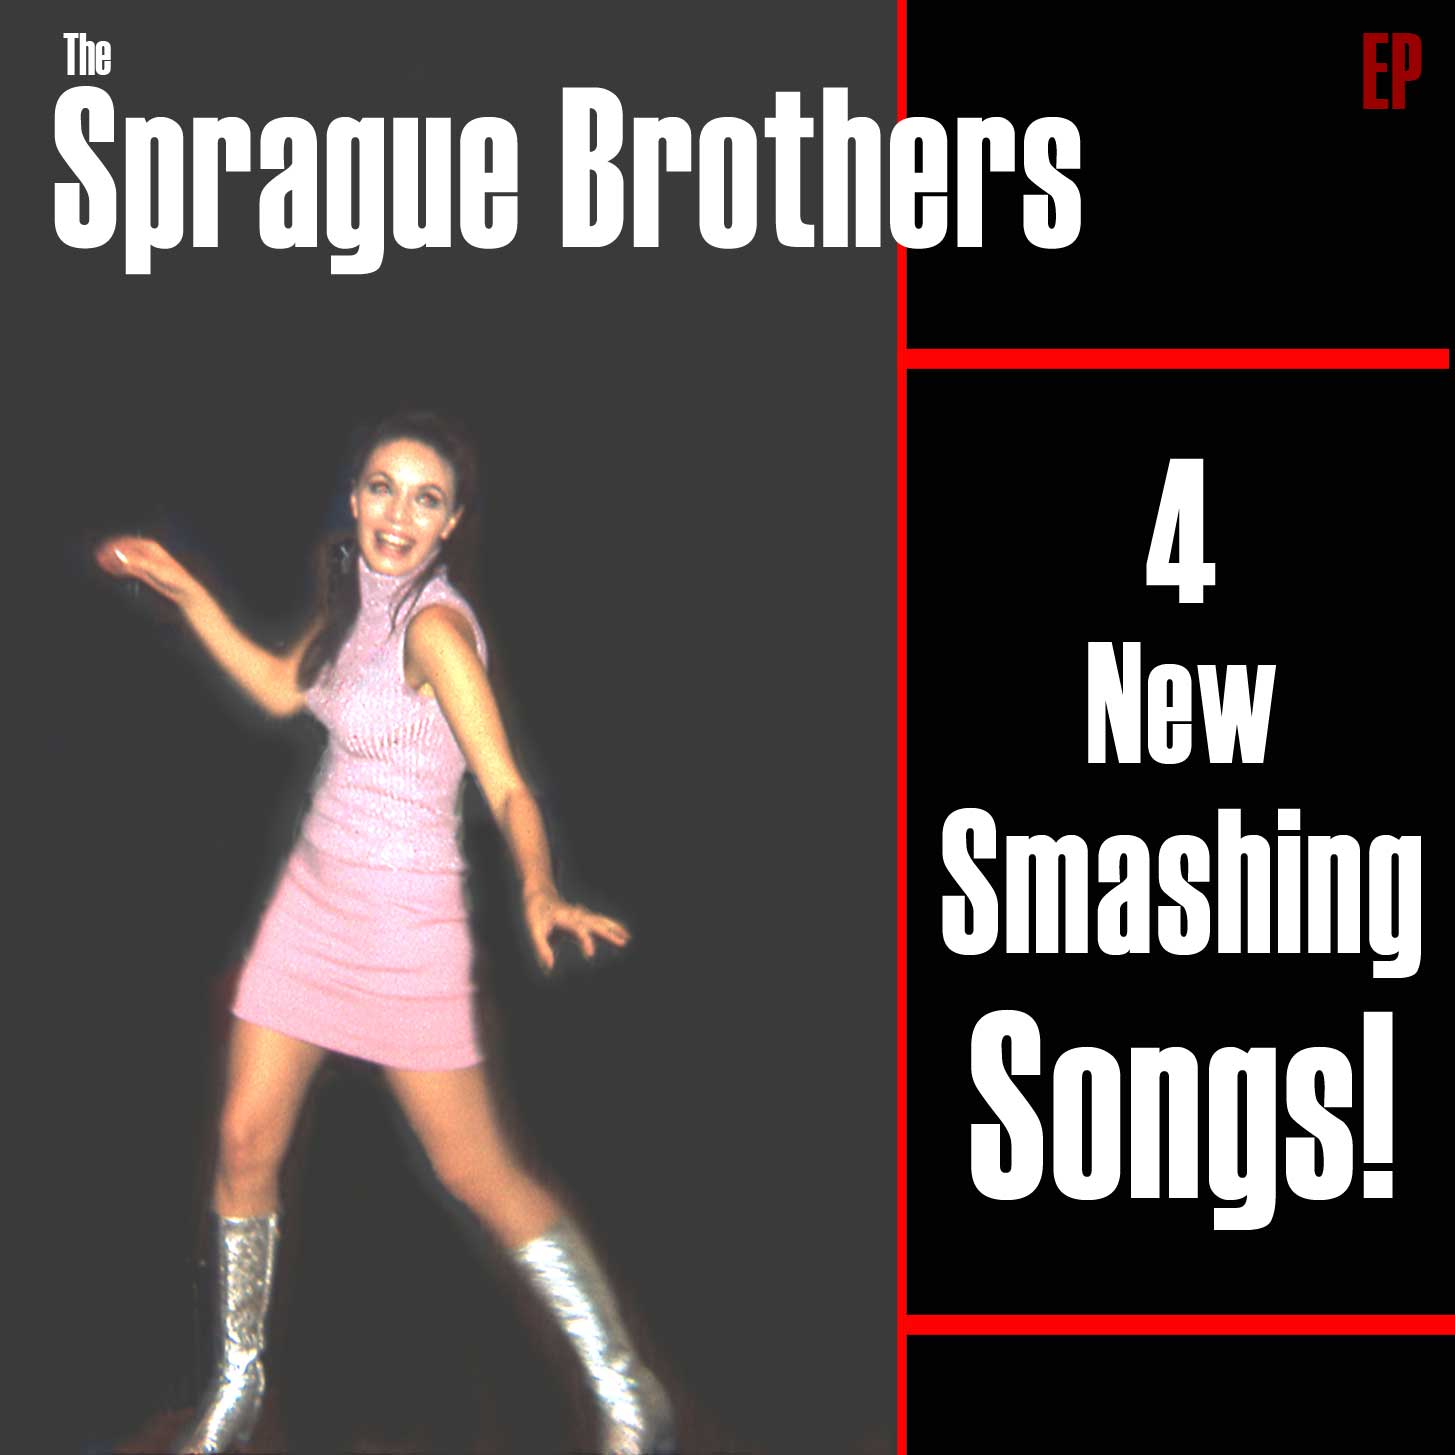 sprague_bros_4newsmashingsongsep.jpg